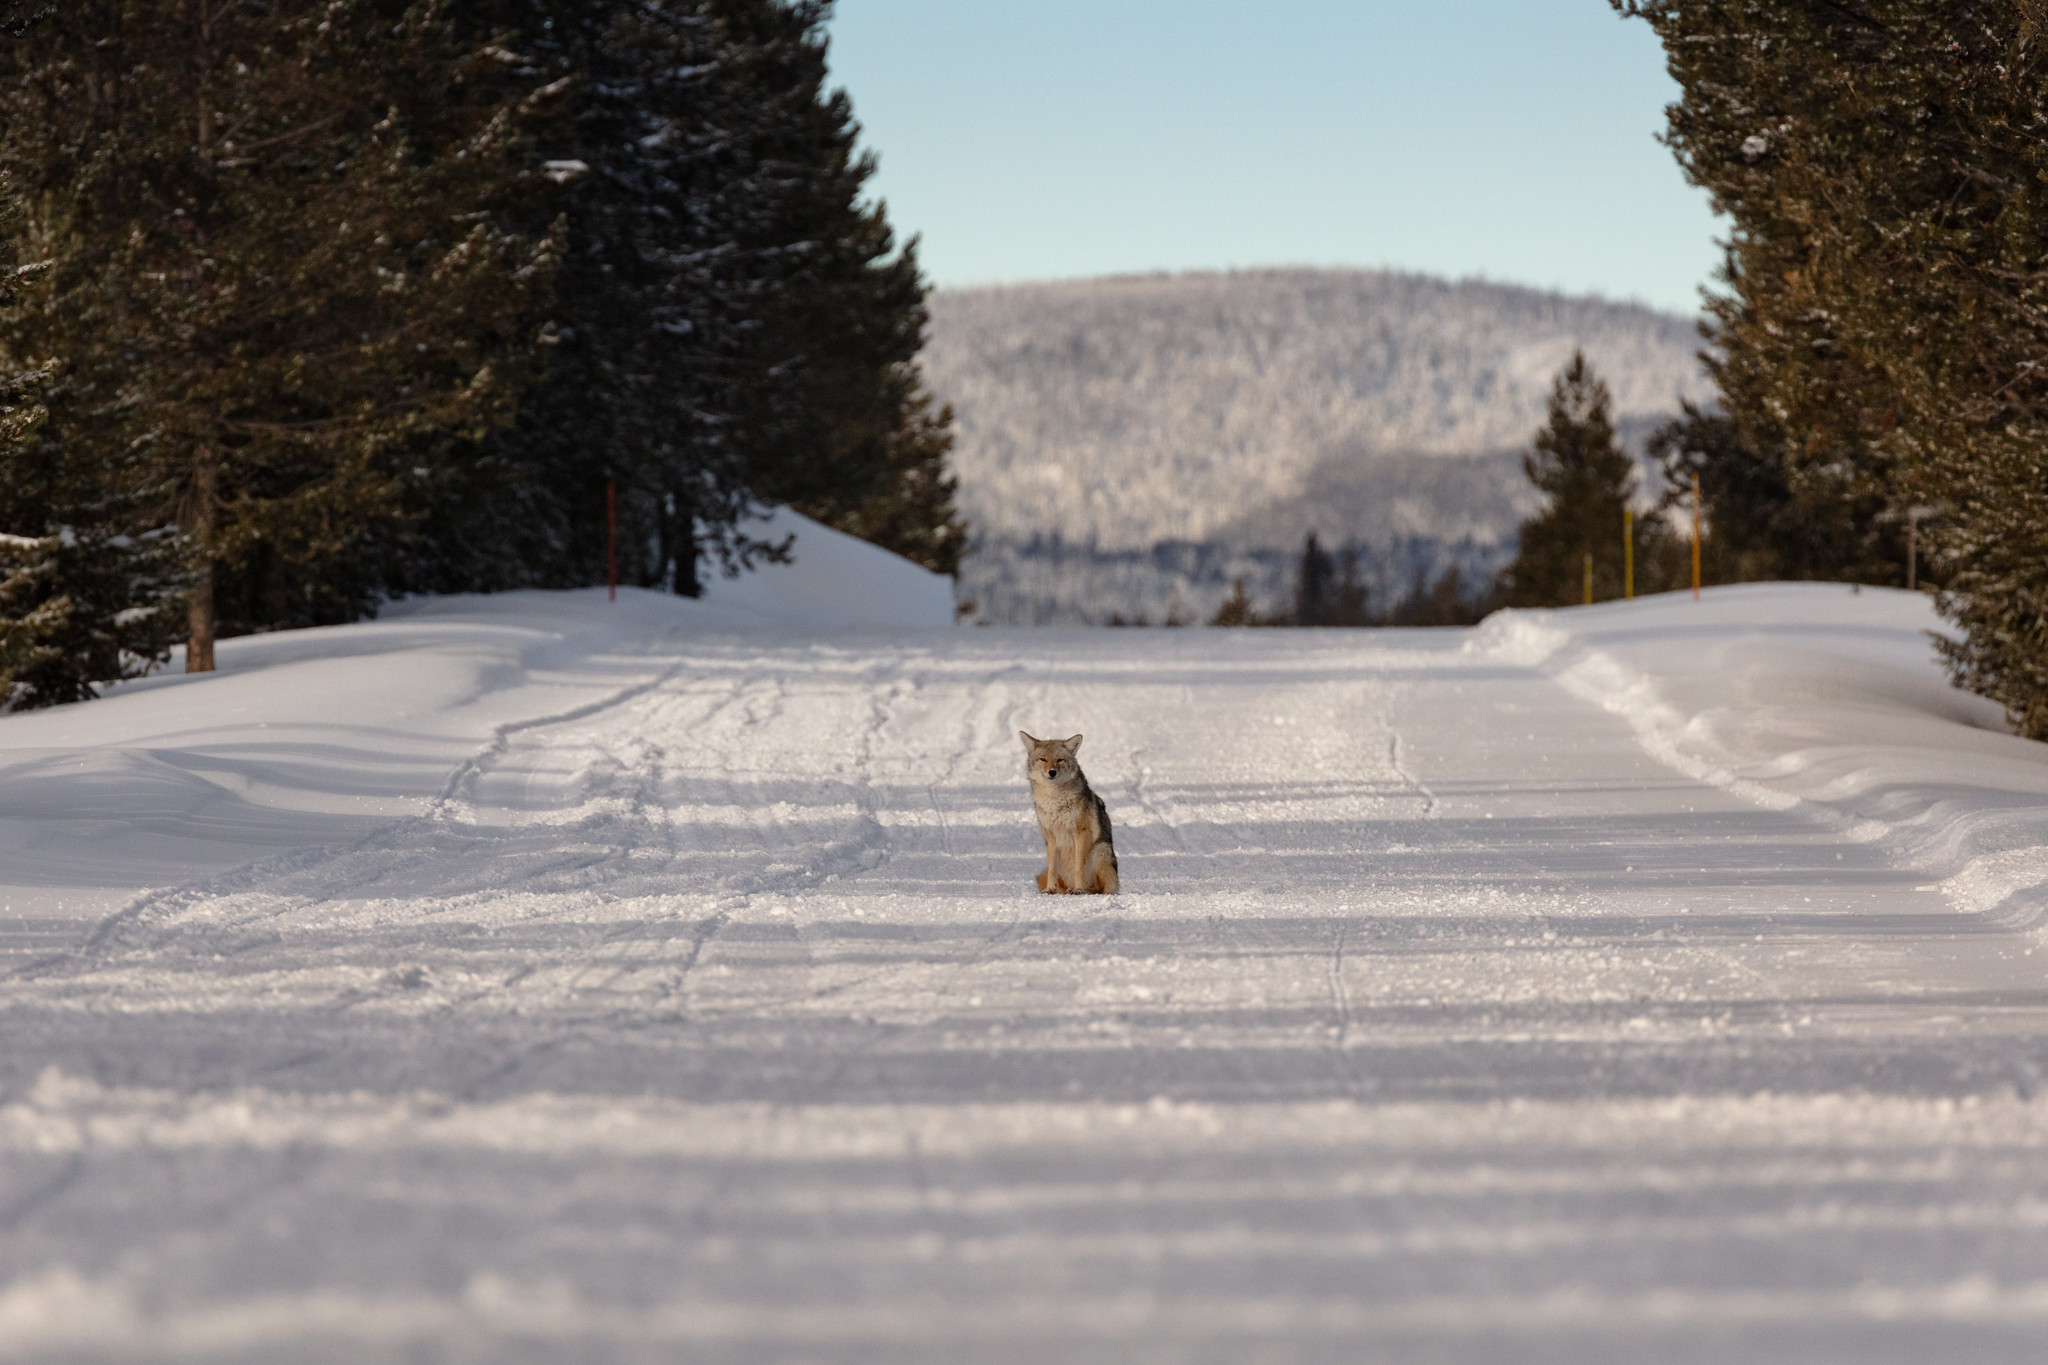 coyote sits in the middle of a snowy road